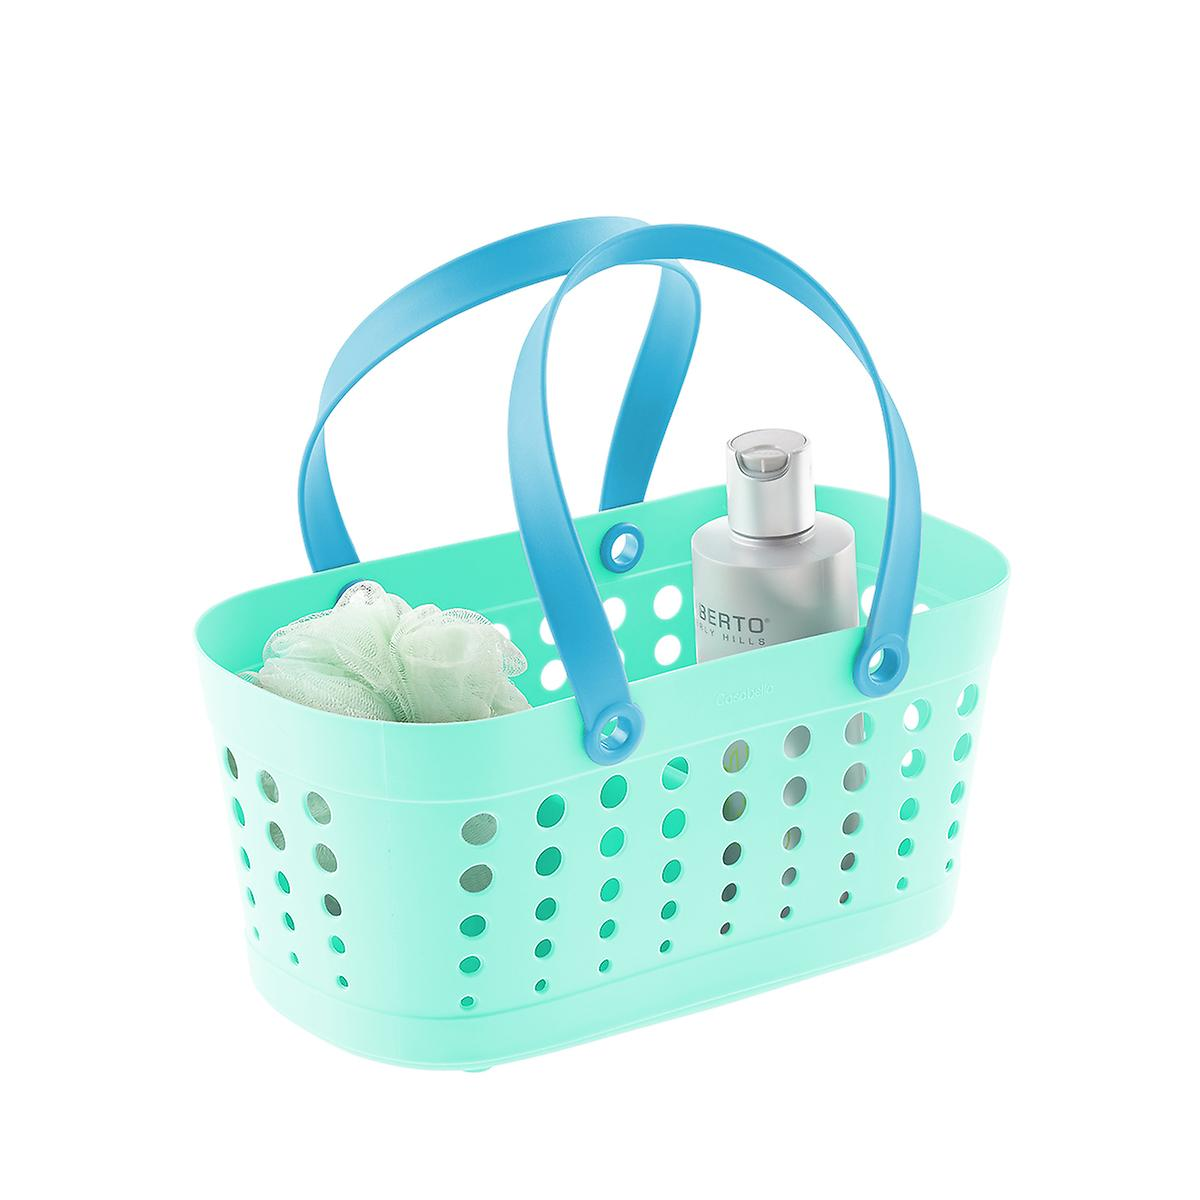 Casabella Turquoise Flexible Shower Basket